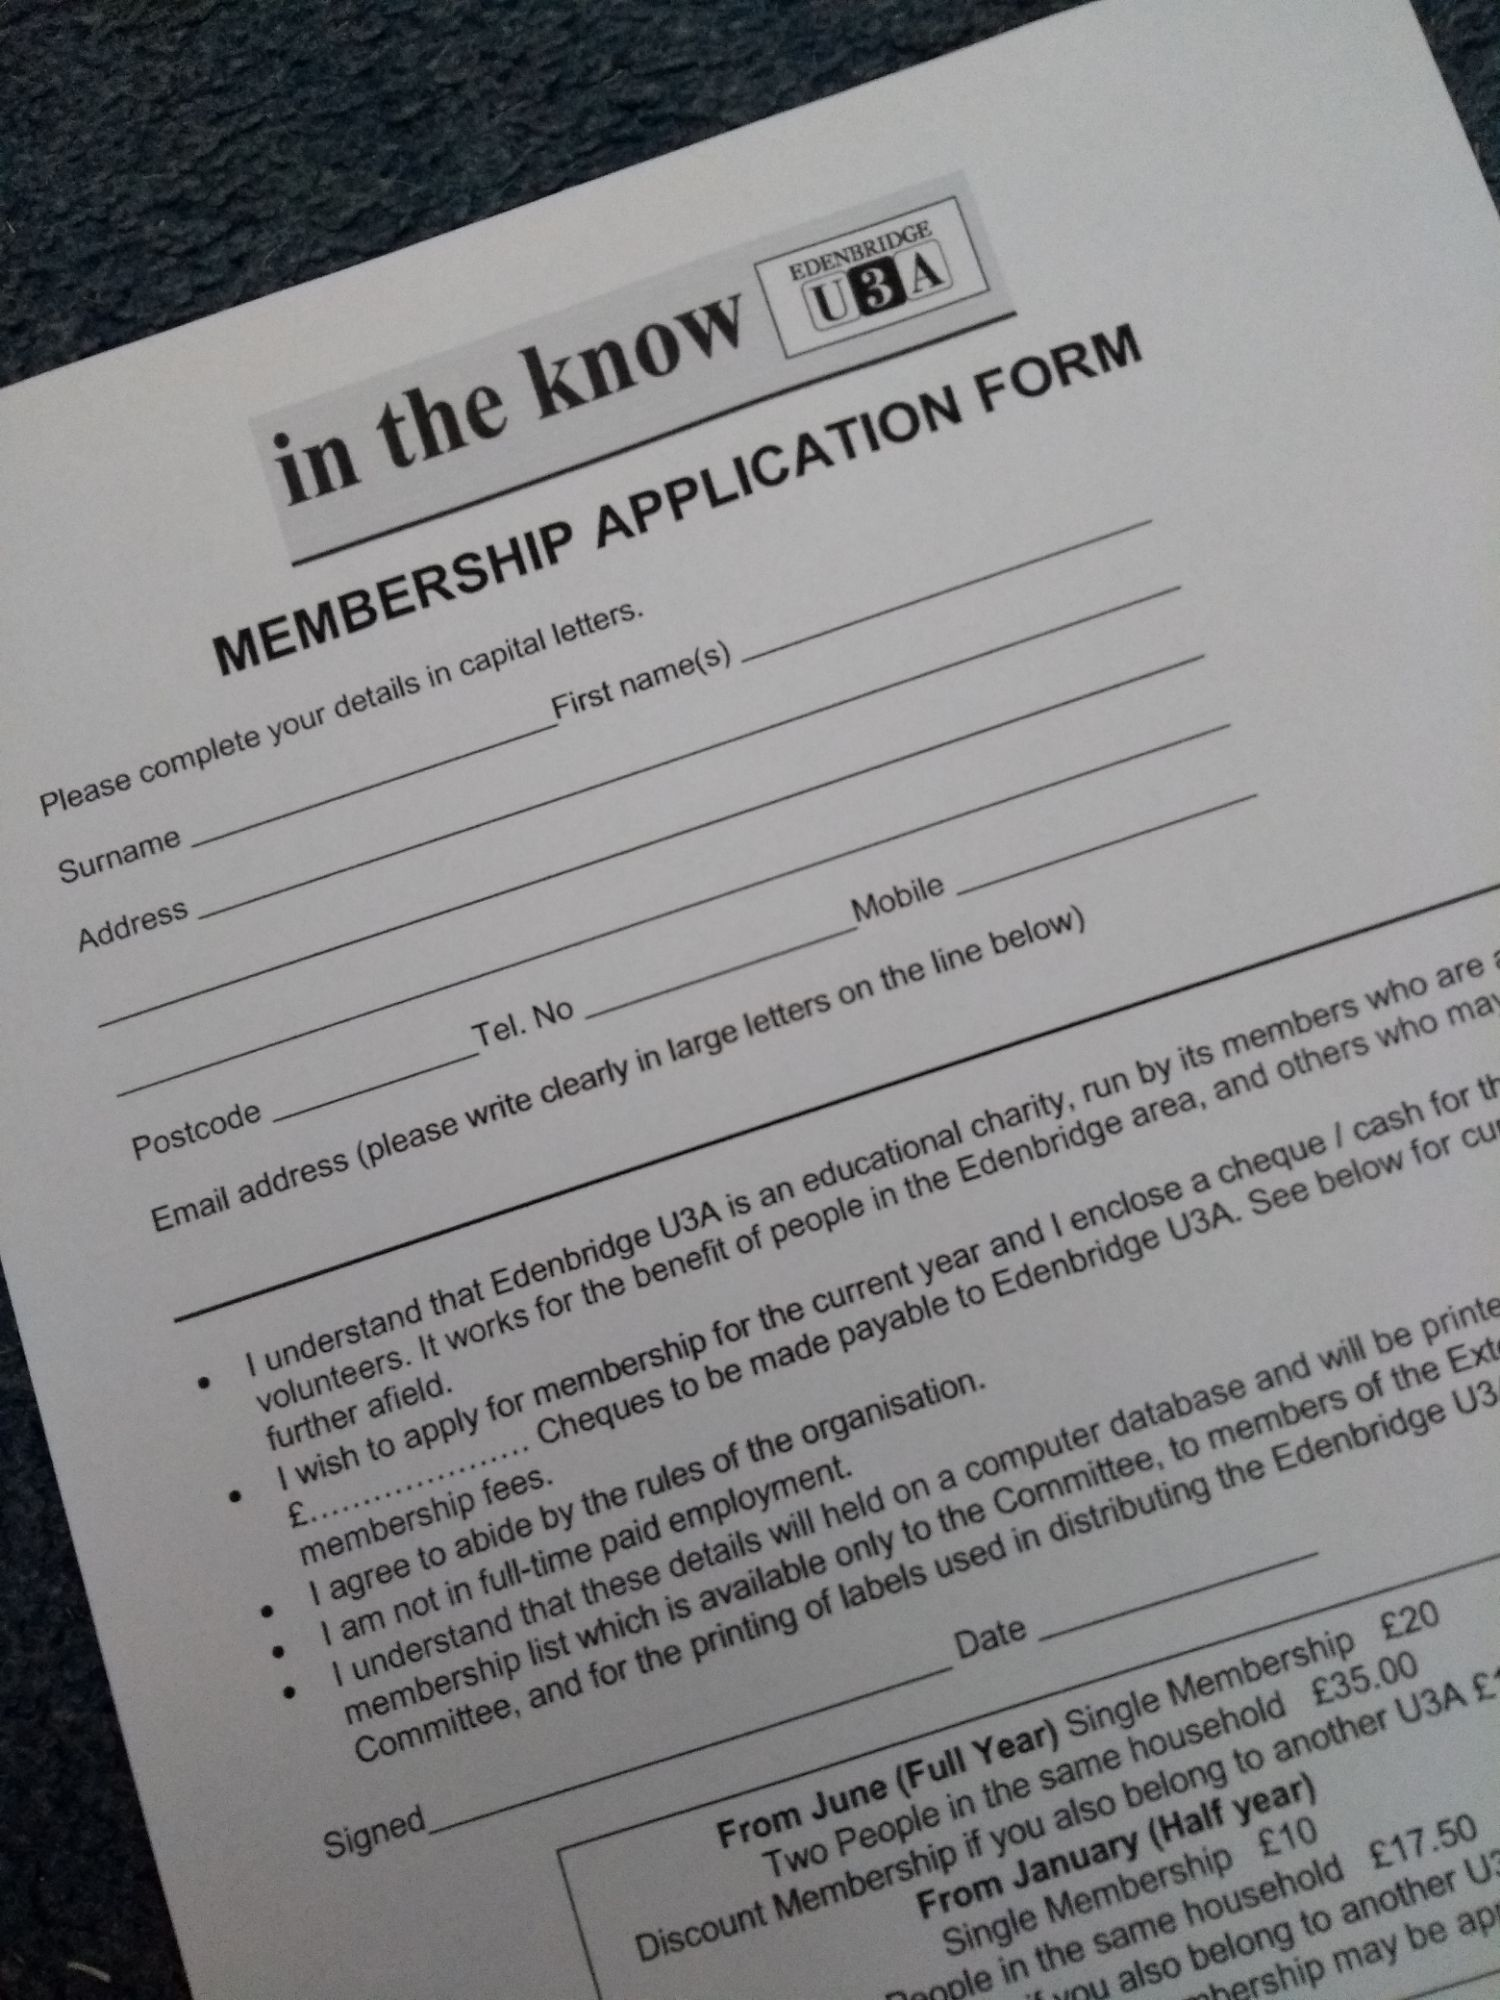 image of application form